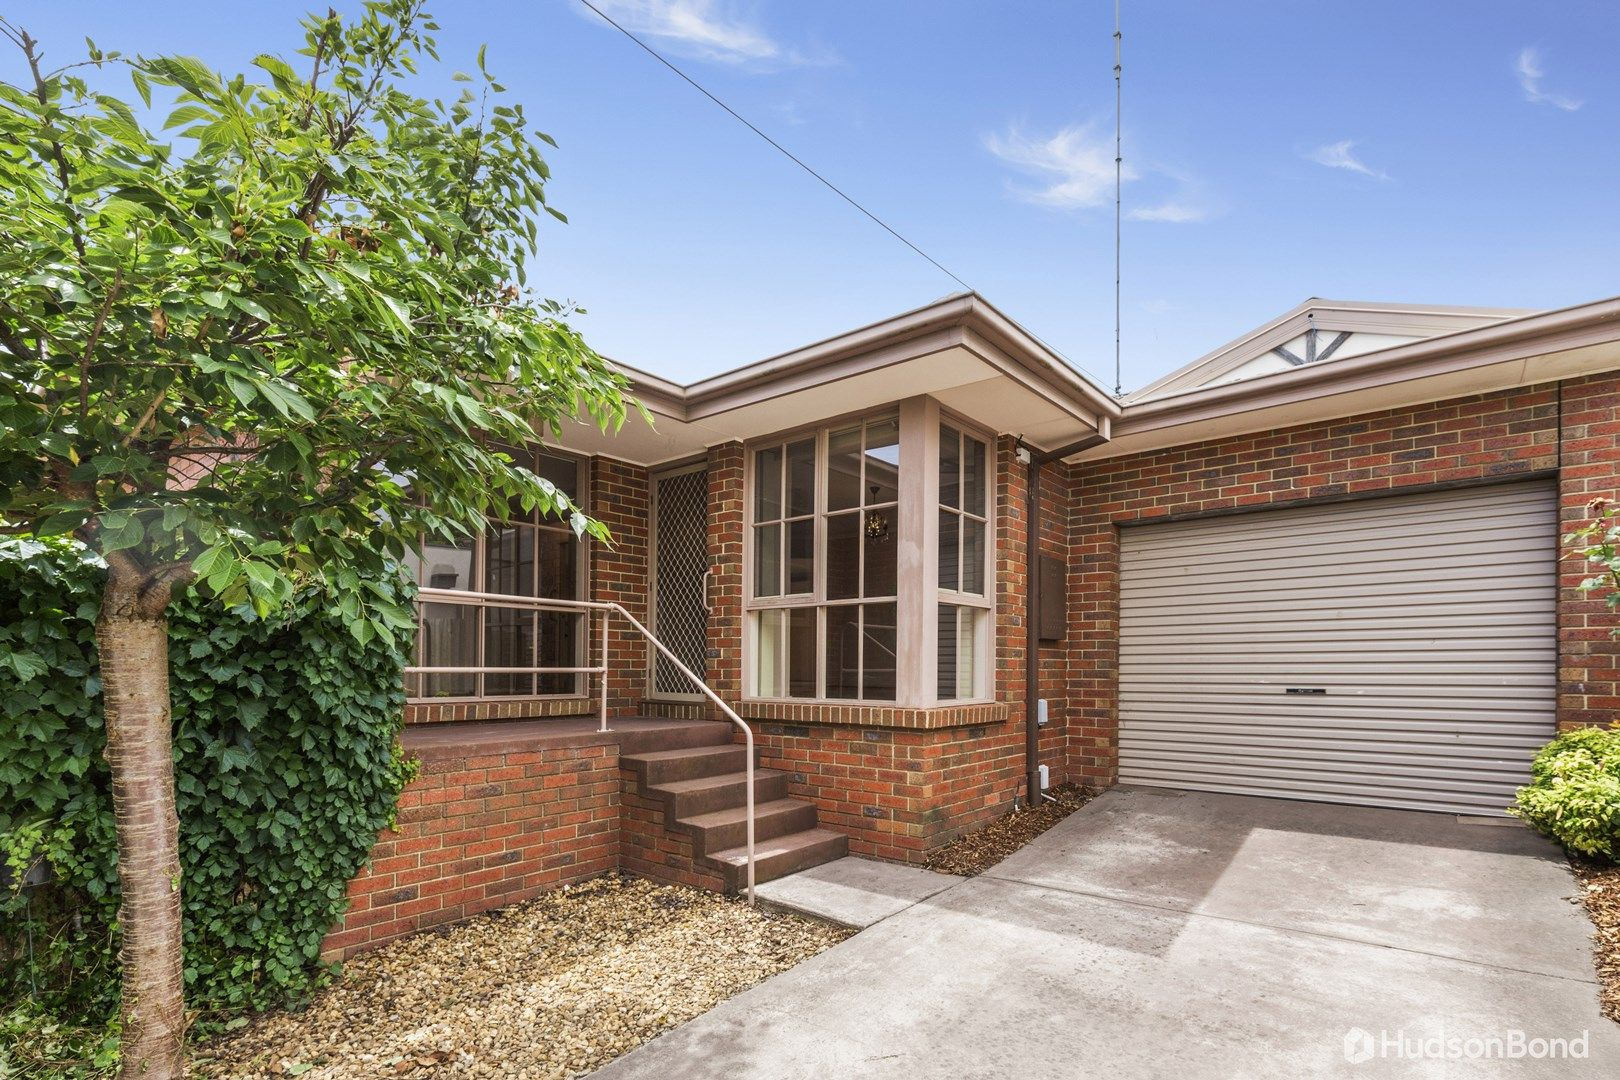 30A Hotham Street, Templestowe Lower VIC 3107, Image 0